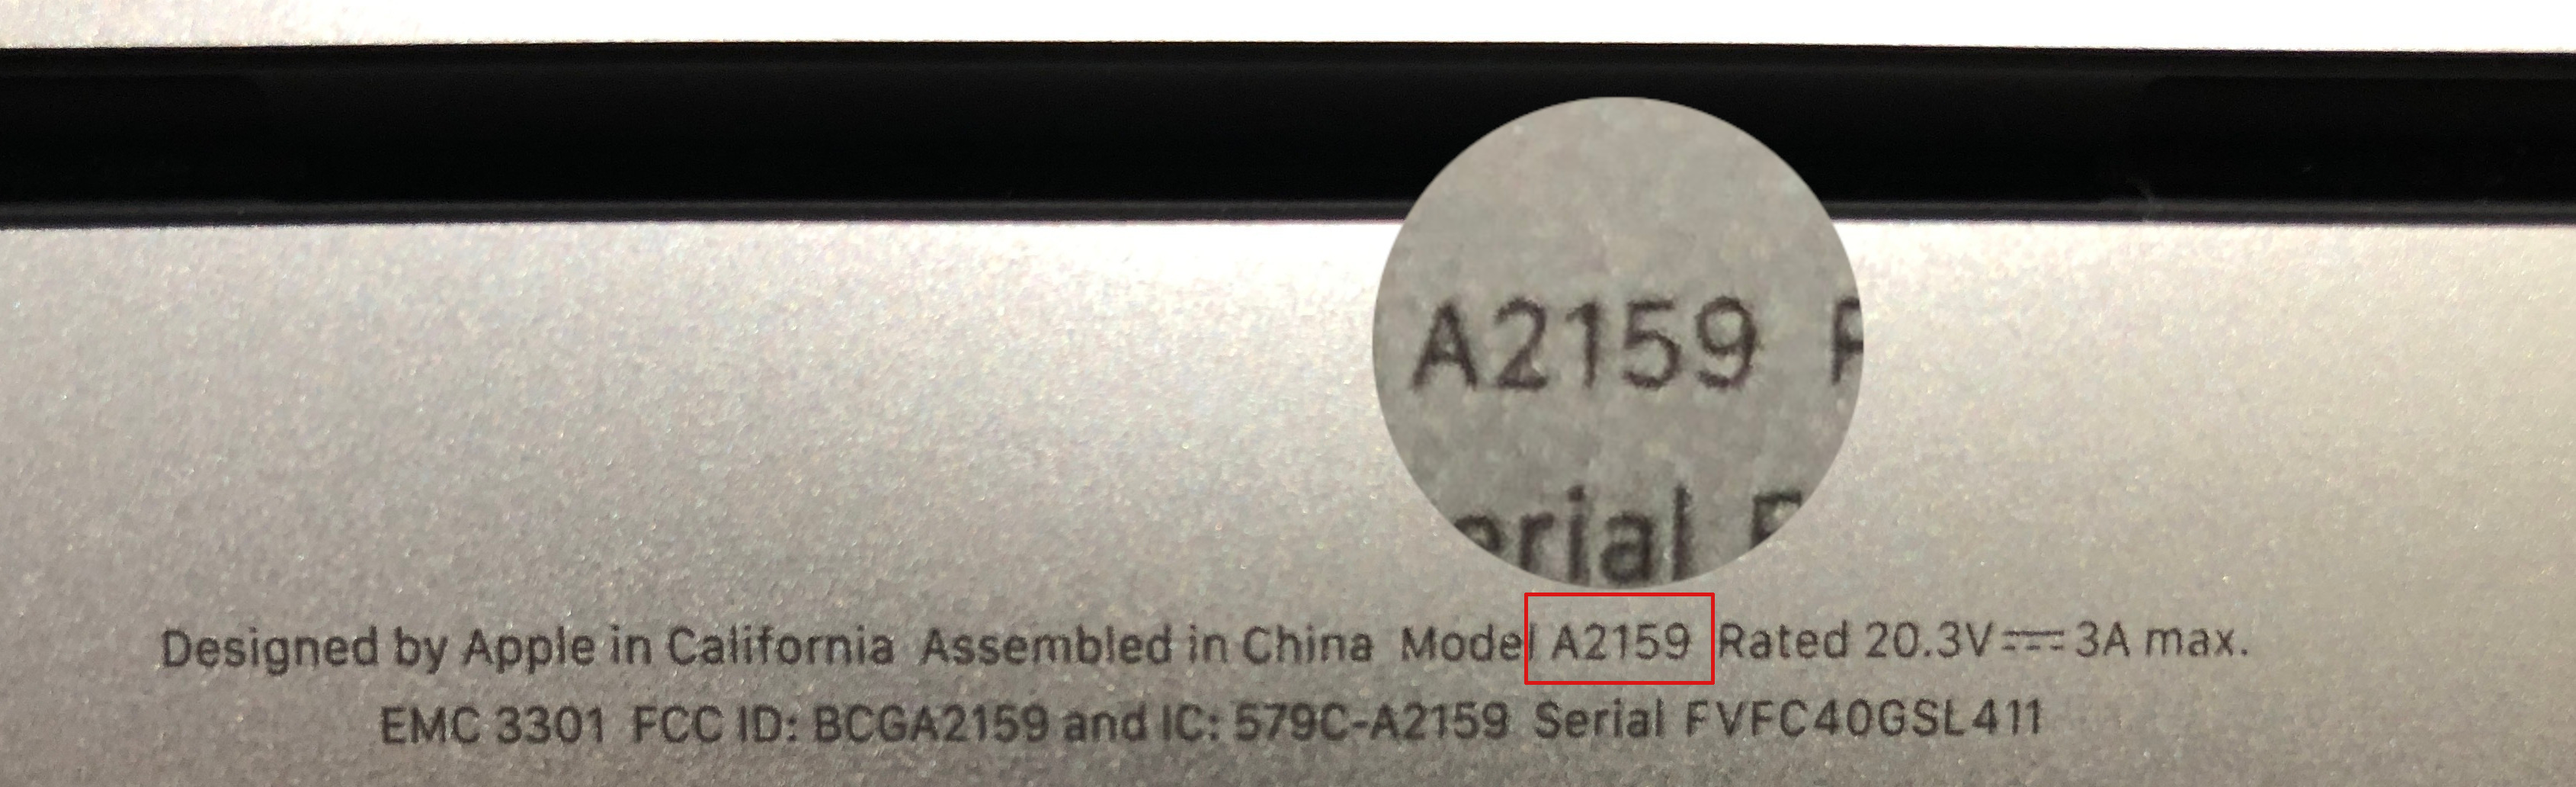 The underside of a MacBook laptop showing the product information